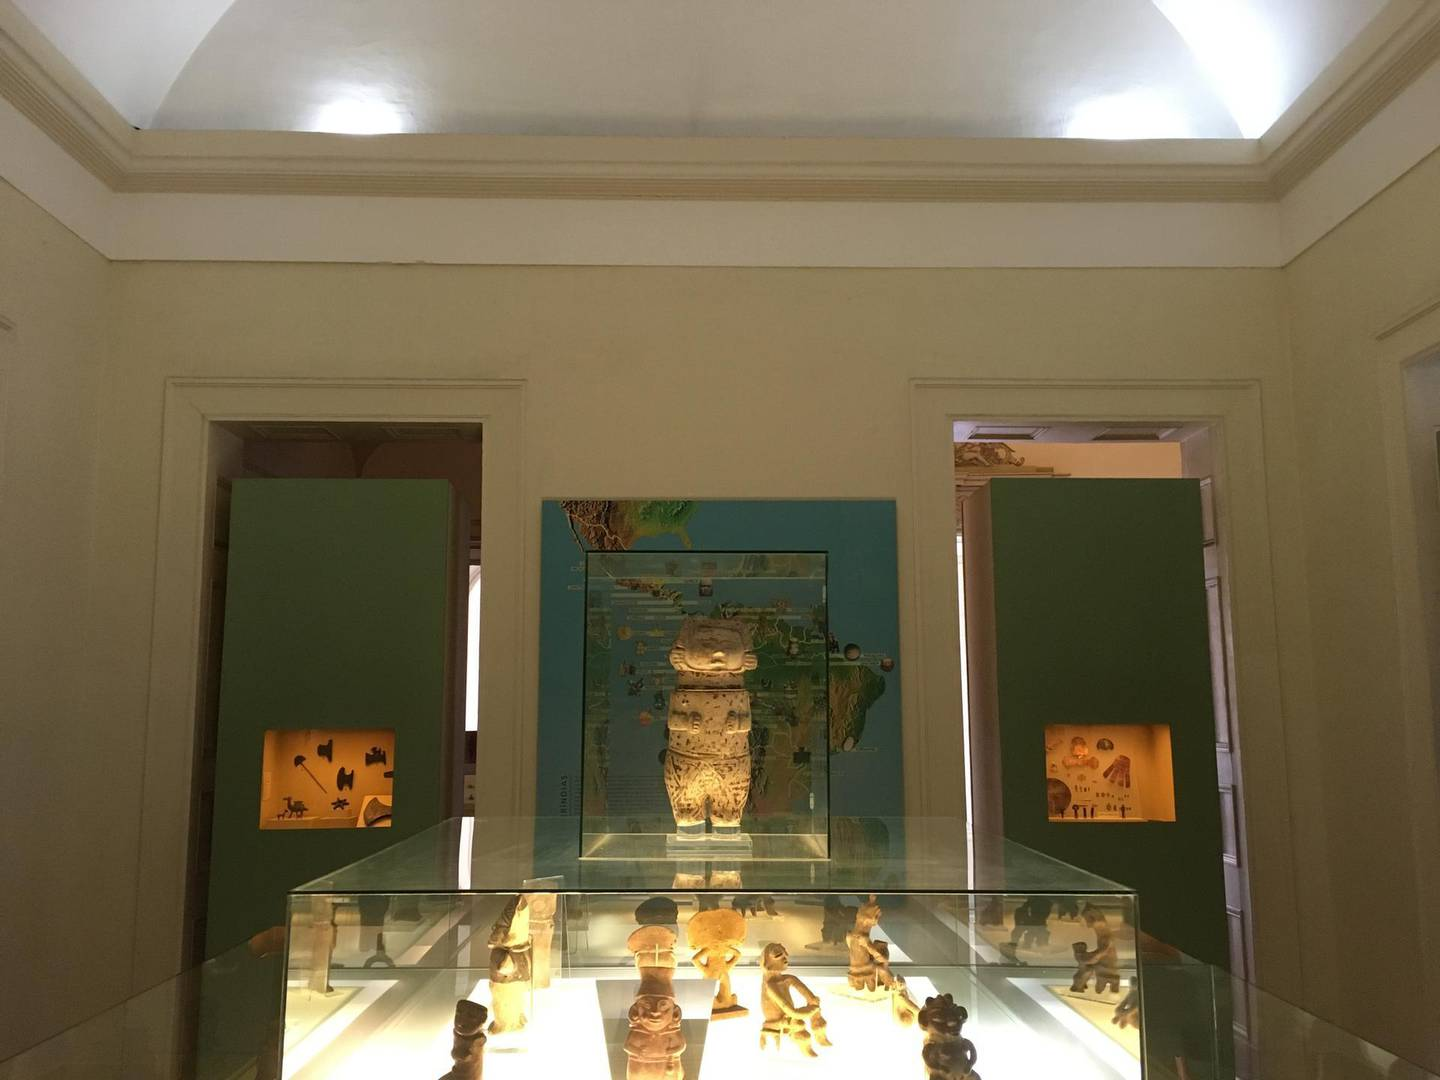 """View of pieces on display at the National Museum in Rio de Janeiro, Brazil, on October 9, 2017. - A massive fire on September 2, 2018 ripped through Rio de Janeiro's treasured National Museum, one of Brazil's oldest, in what the nation's president said was a """"tragic"""" loss of knowledge and heritage. Even before the embers had begun to cool early Monday, grief over the huge cultural loss had given way to anger at across-the-board budget cuts threatening Brazil's multi-cultural heritage. (Photo by Erwan LE BOURDONNEC / AFP)"""